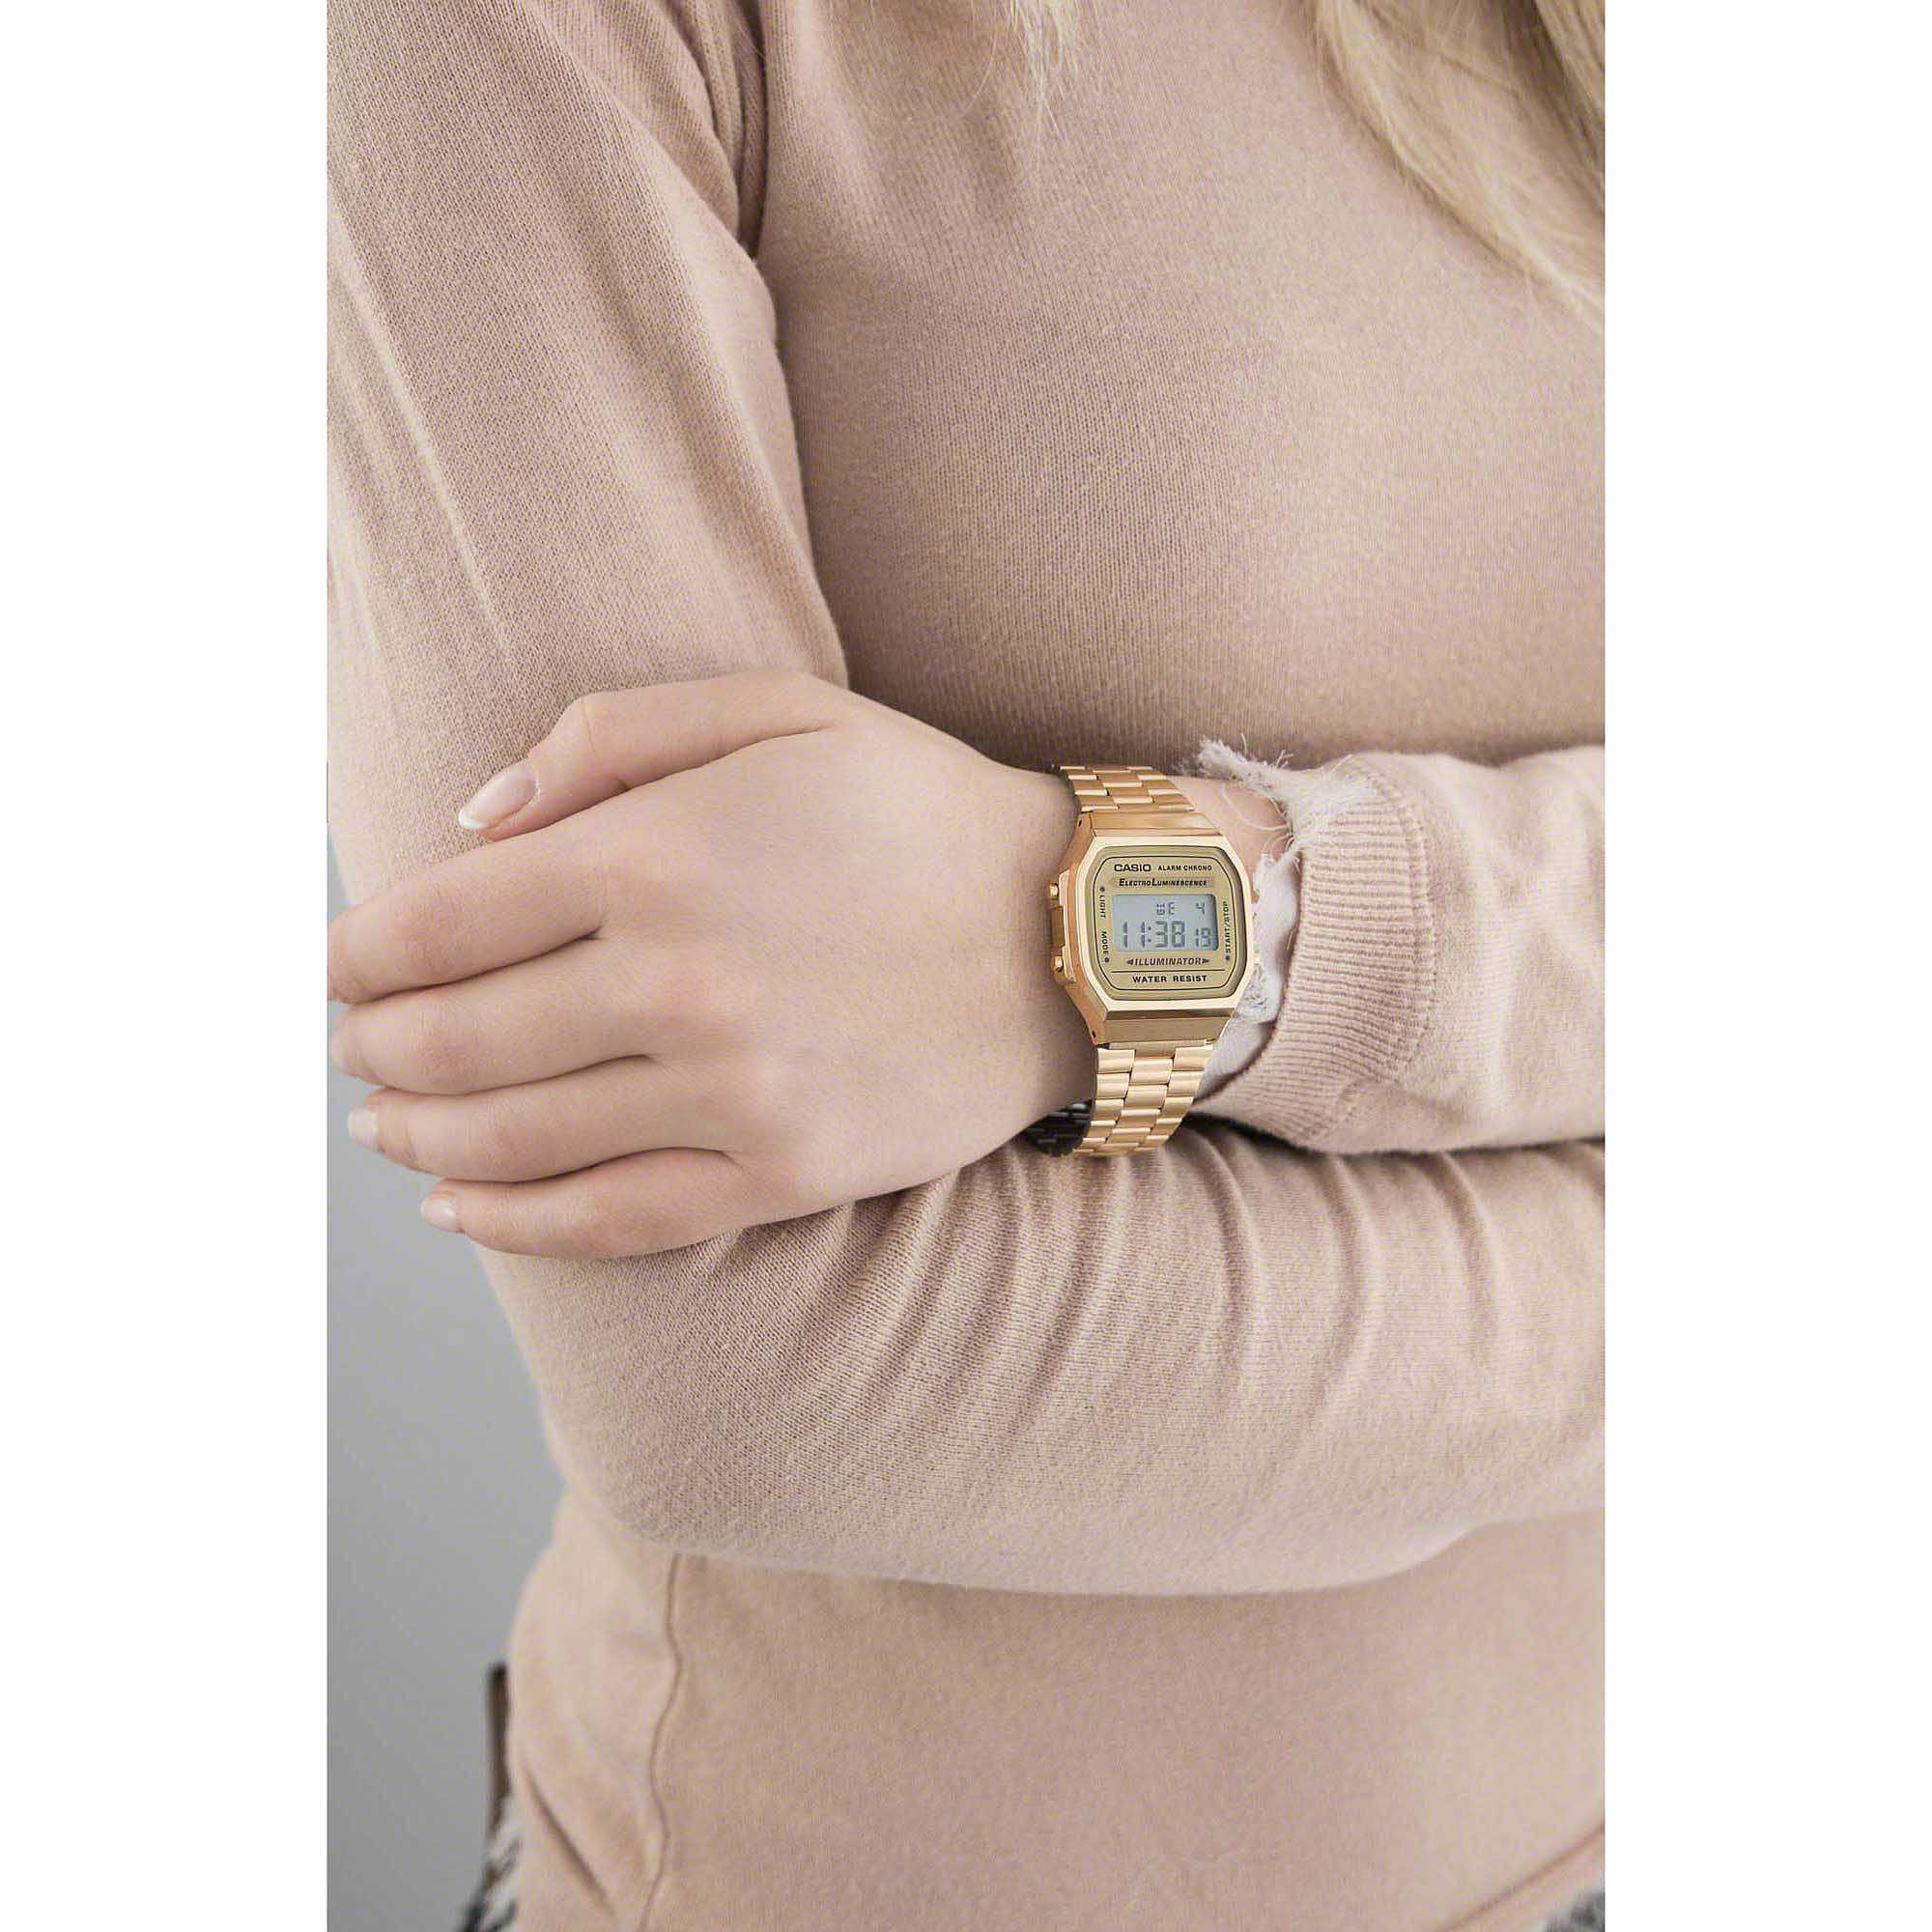 9c91e6c790bd ... Vintage in acciaio inox Dorato. Orologio Digitale Unisex Casio Casio  Collection A168WG